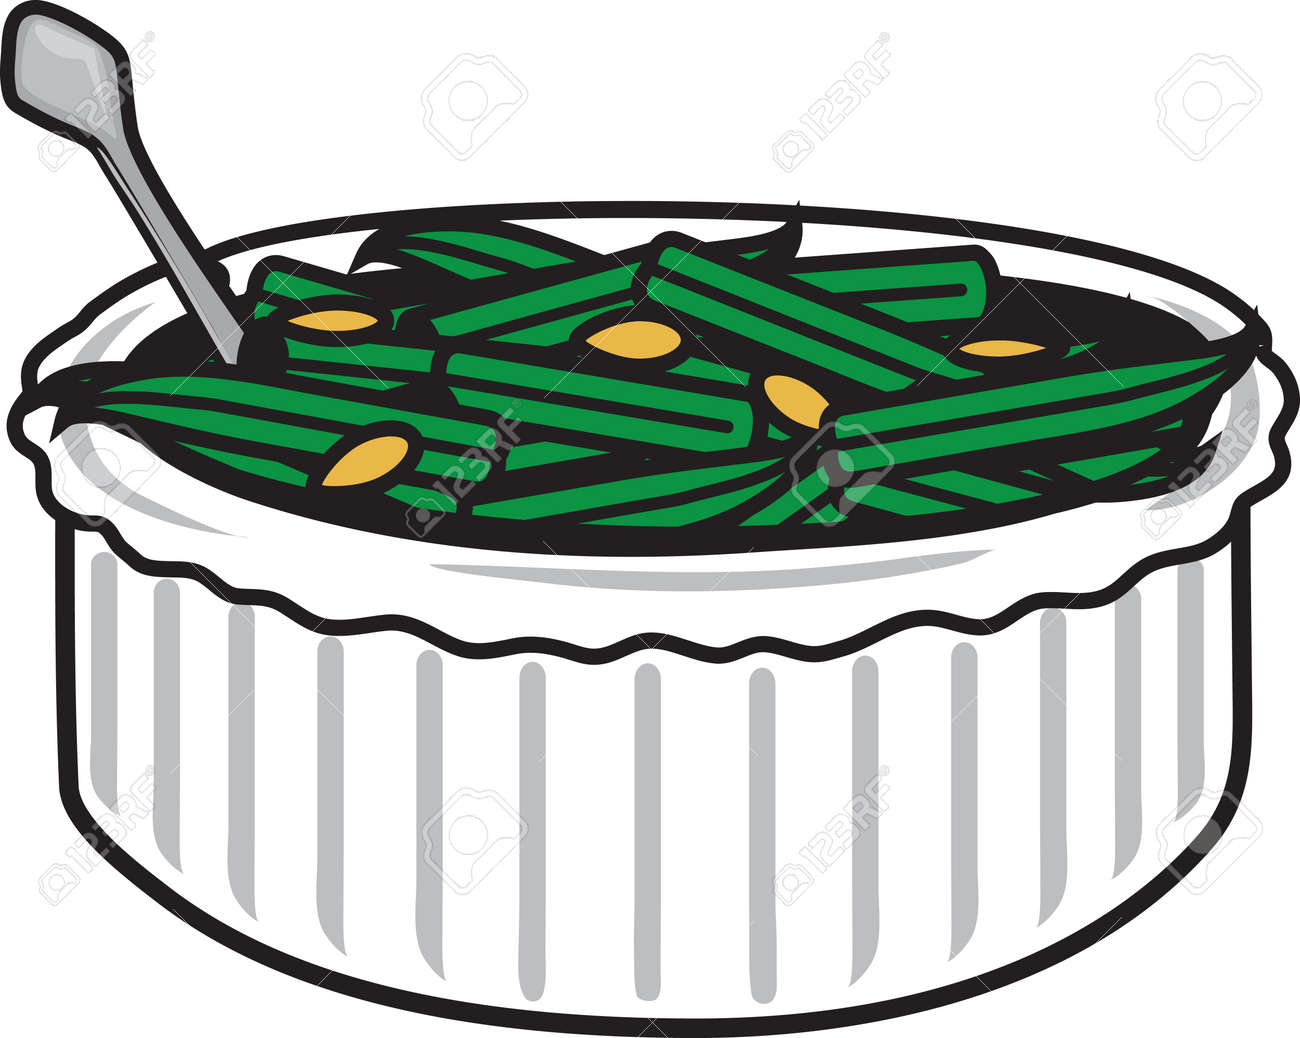 Image result for green bean clipart